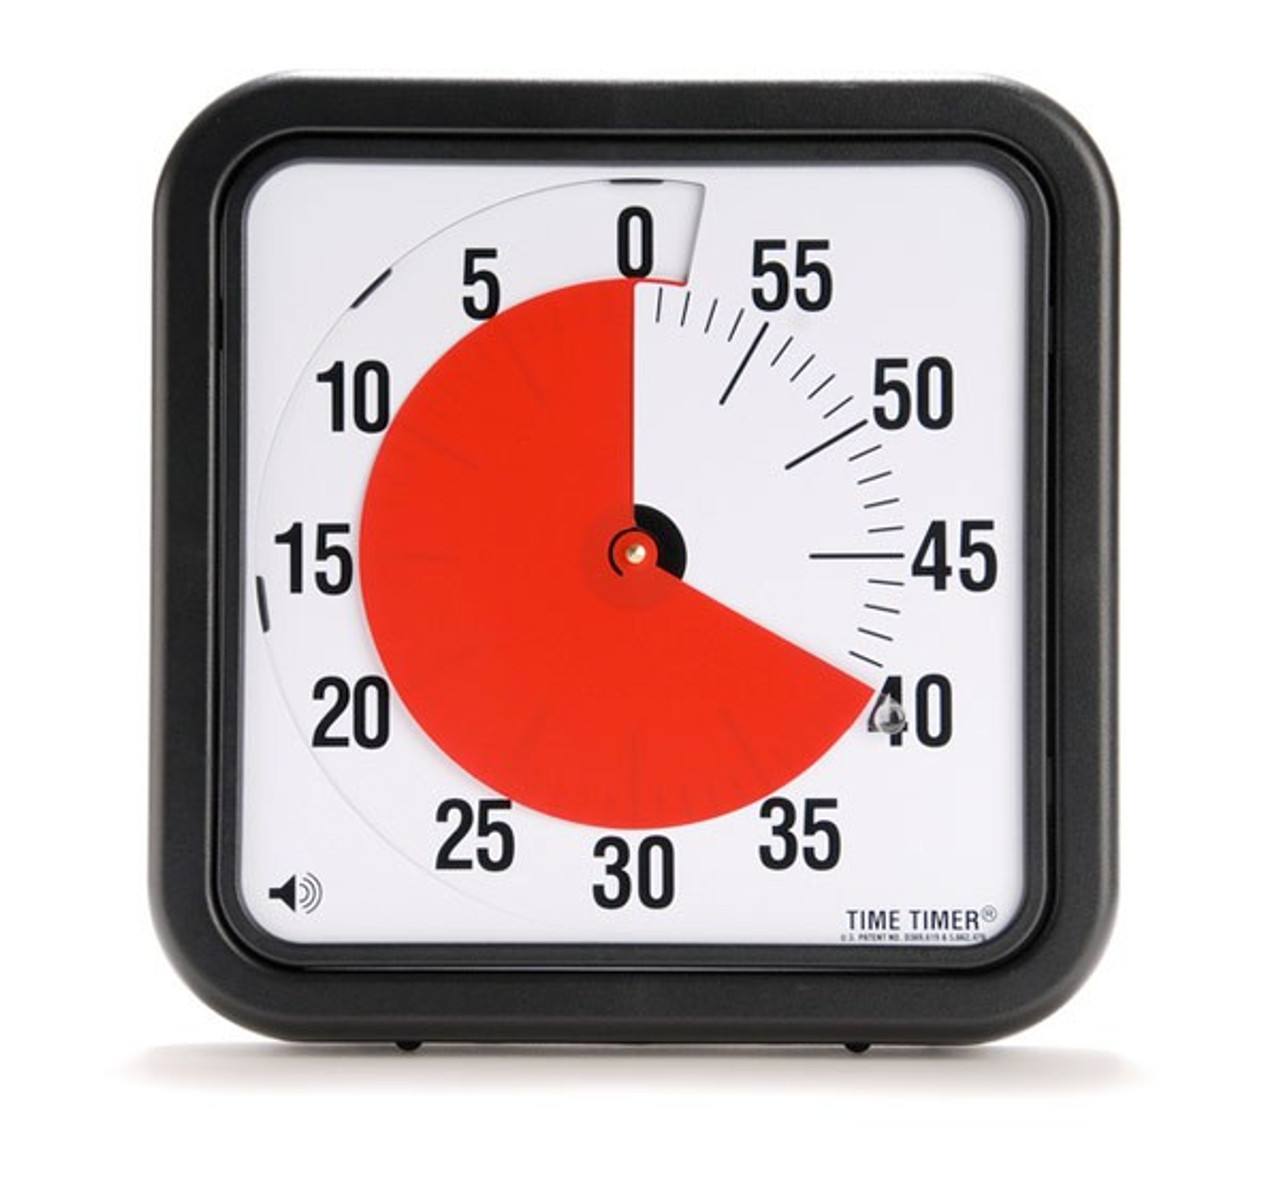 Time Timer - 8 Inch